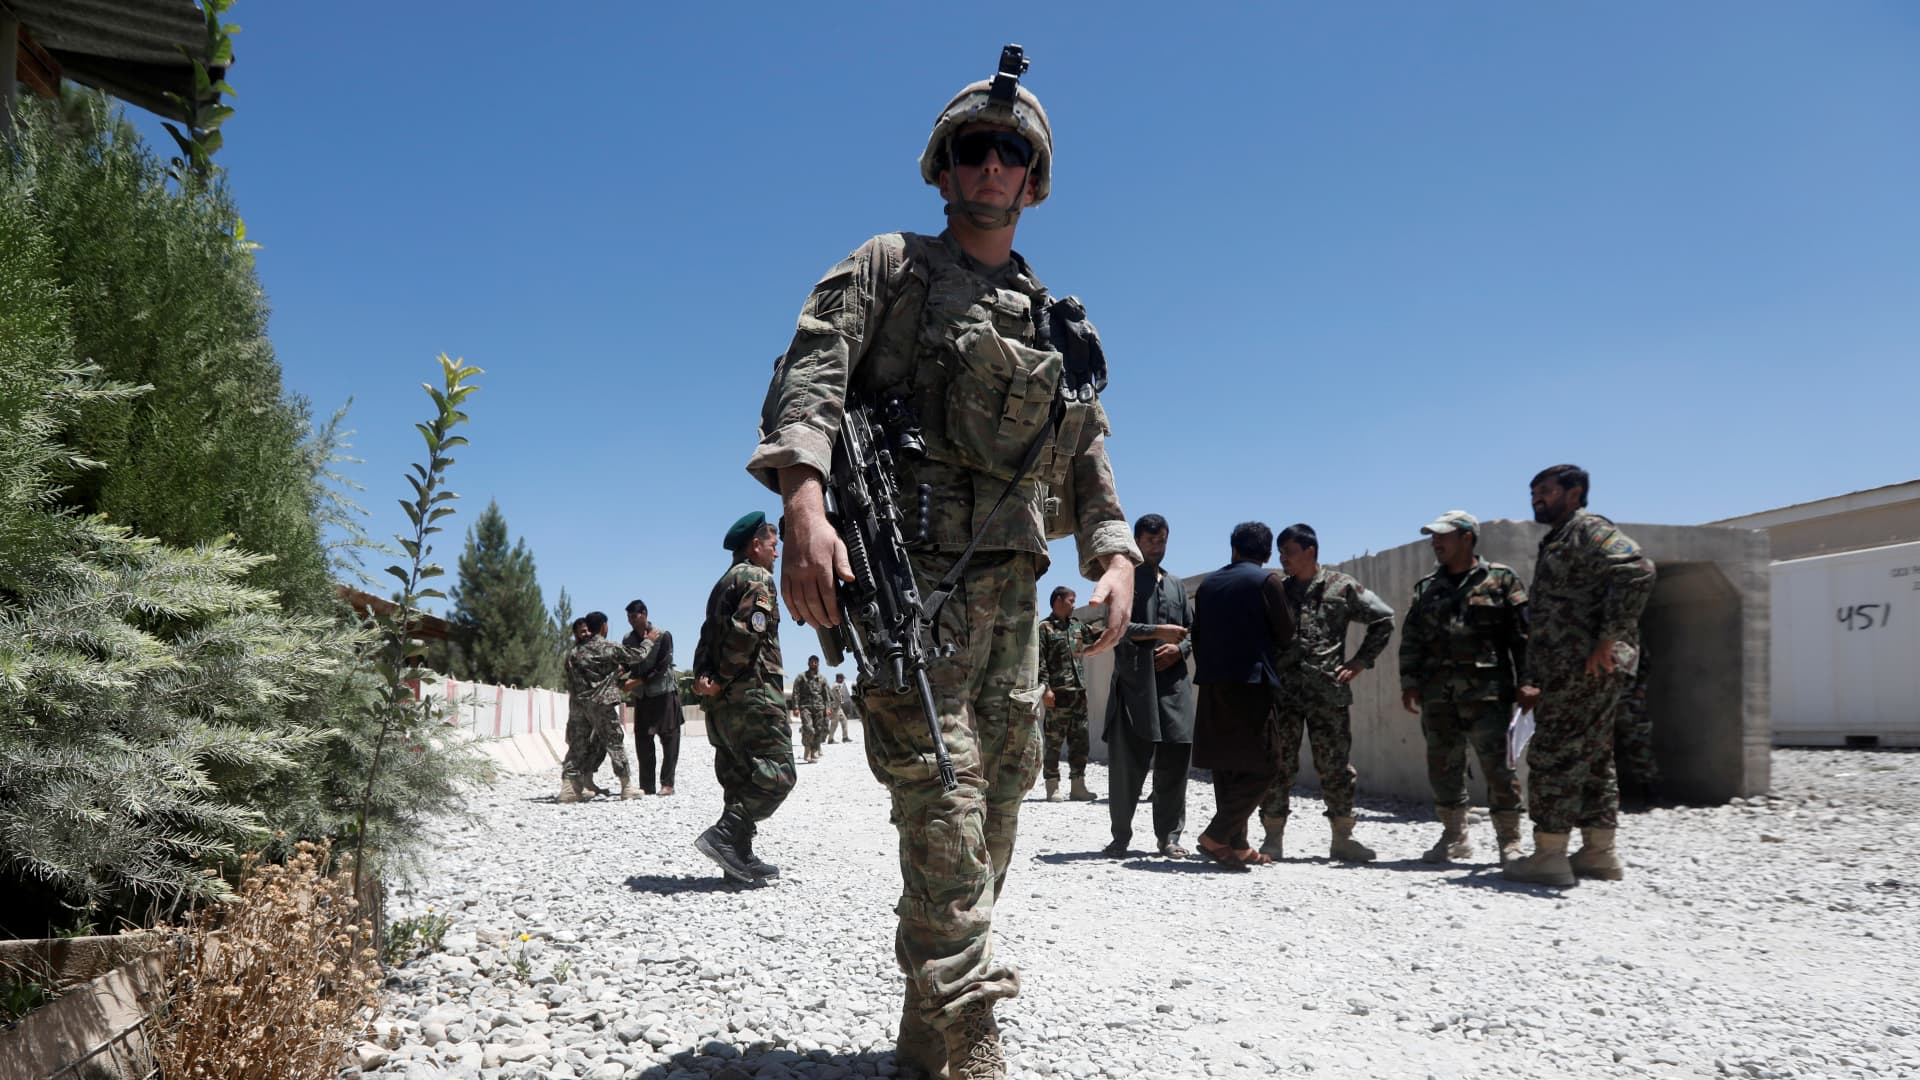 A U.S. soldier keeps watch at an Afghan National Army (ANA) base in Logar province, Afghanistan August 5, 2018